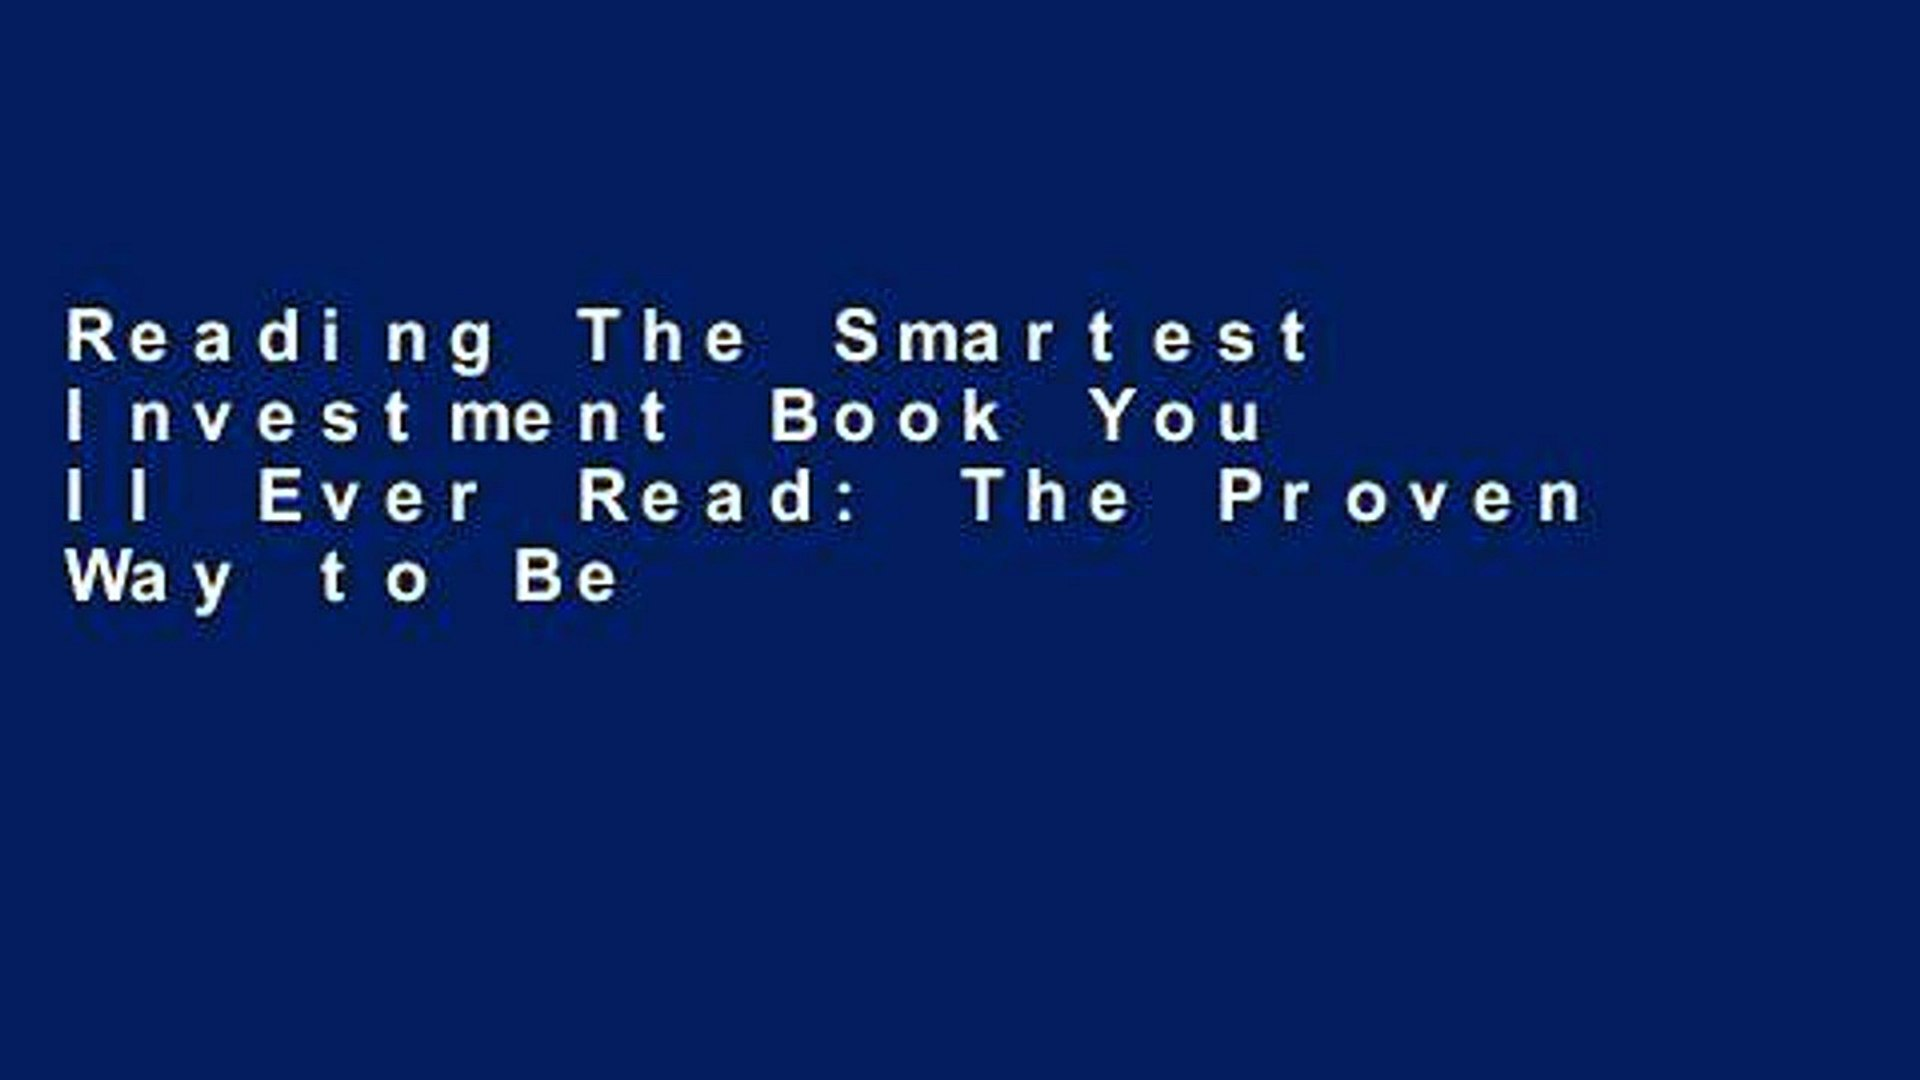 Reading The Smartest Investment Book You ll Ever Read: The Proven Way to Beat the pros and Take